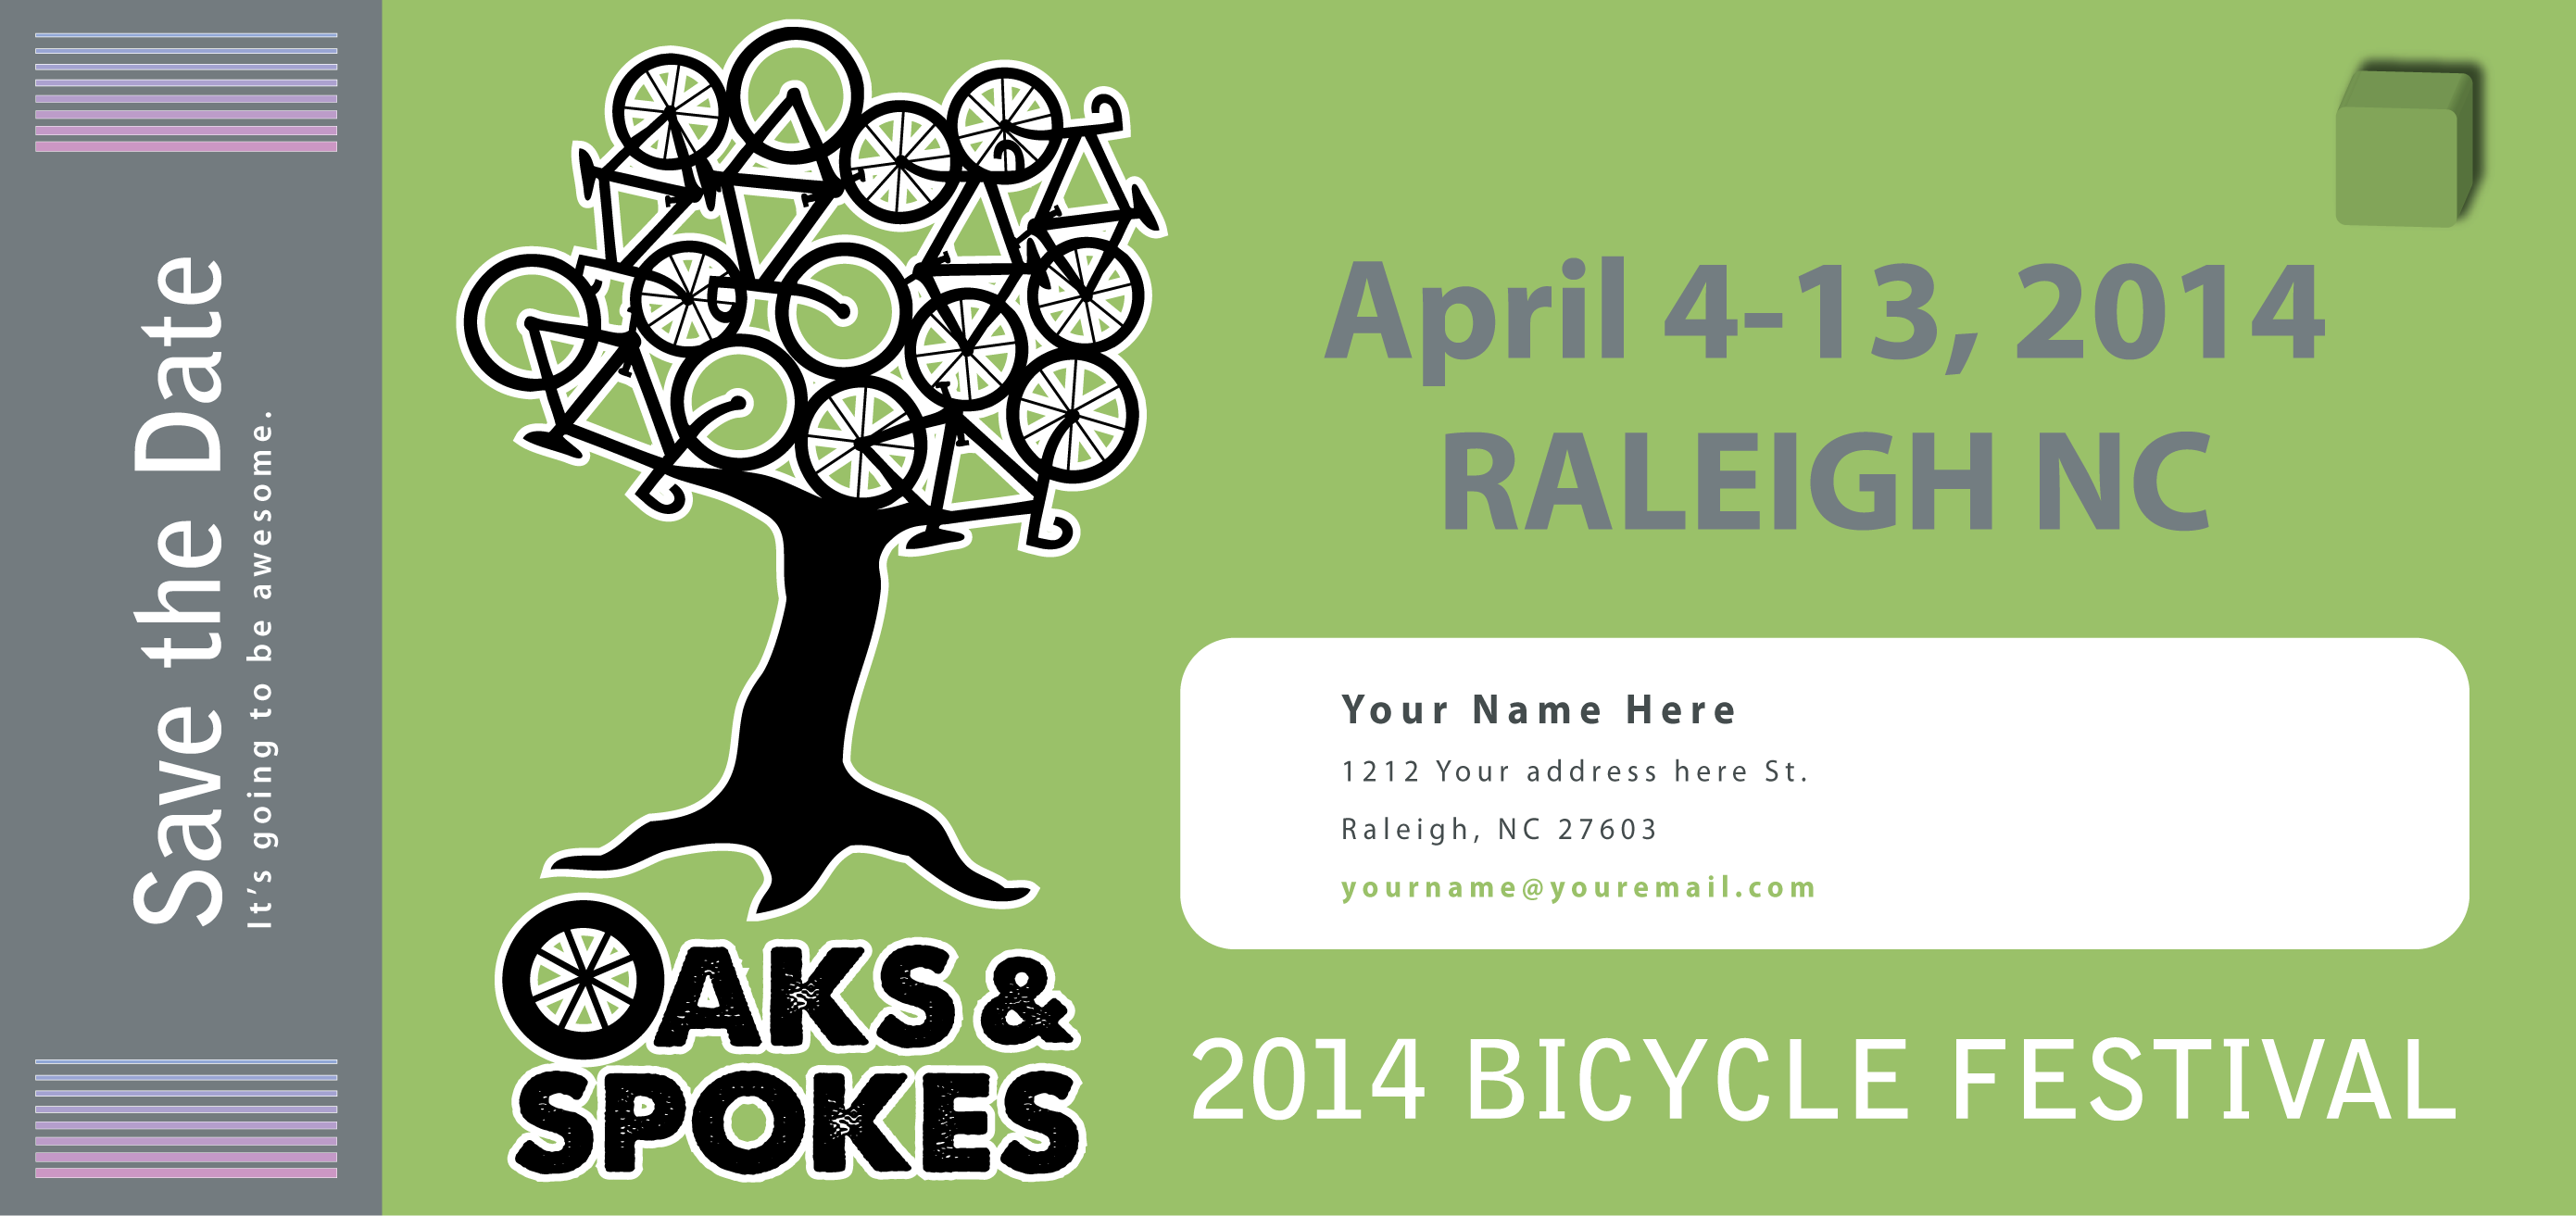 The Oaks and Spokes bicycle festival will take place April 4-13, 2014!